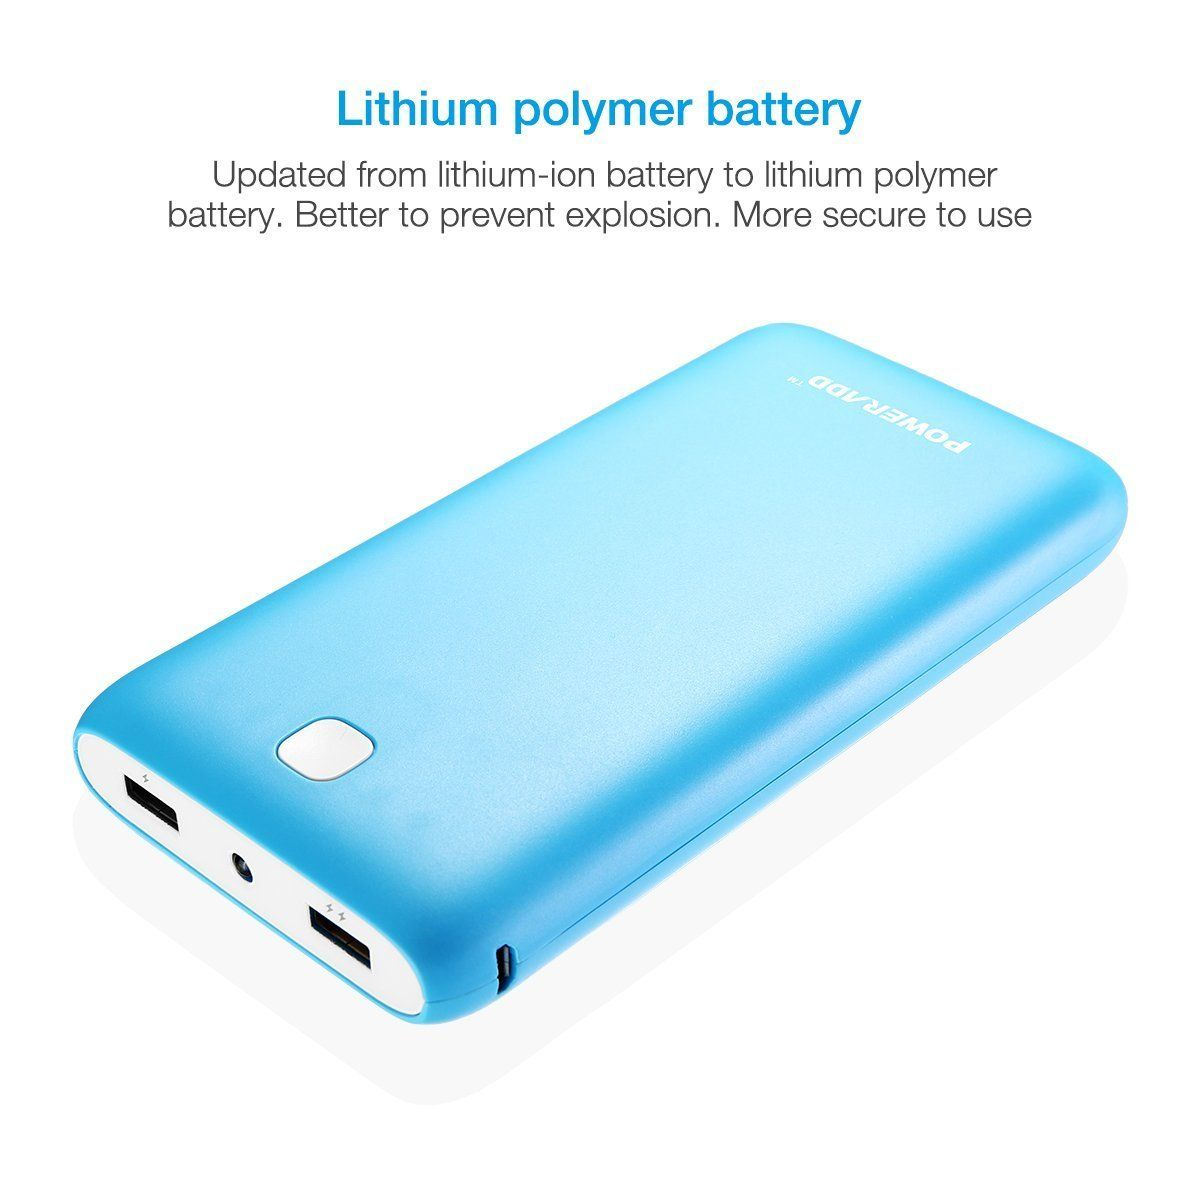 Ipad Pro Battery Pack Portable External Battery 20000mah Power Mobile iPhone